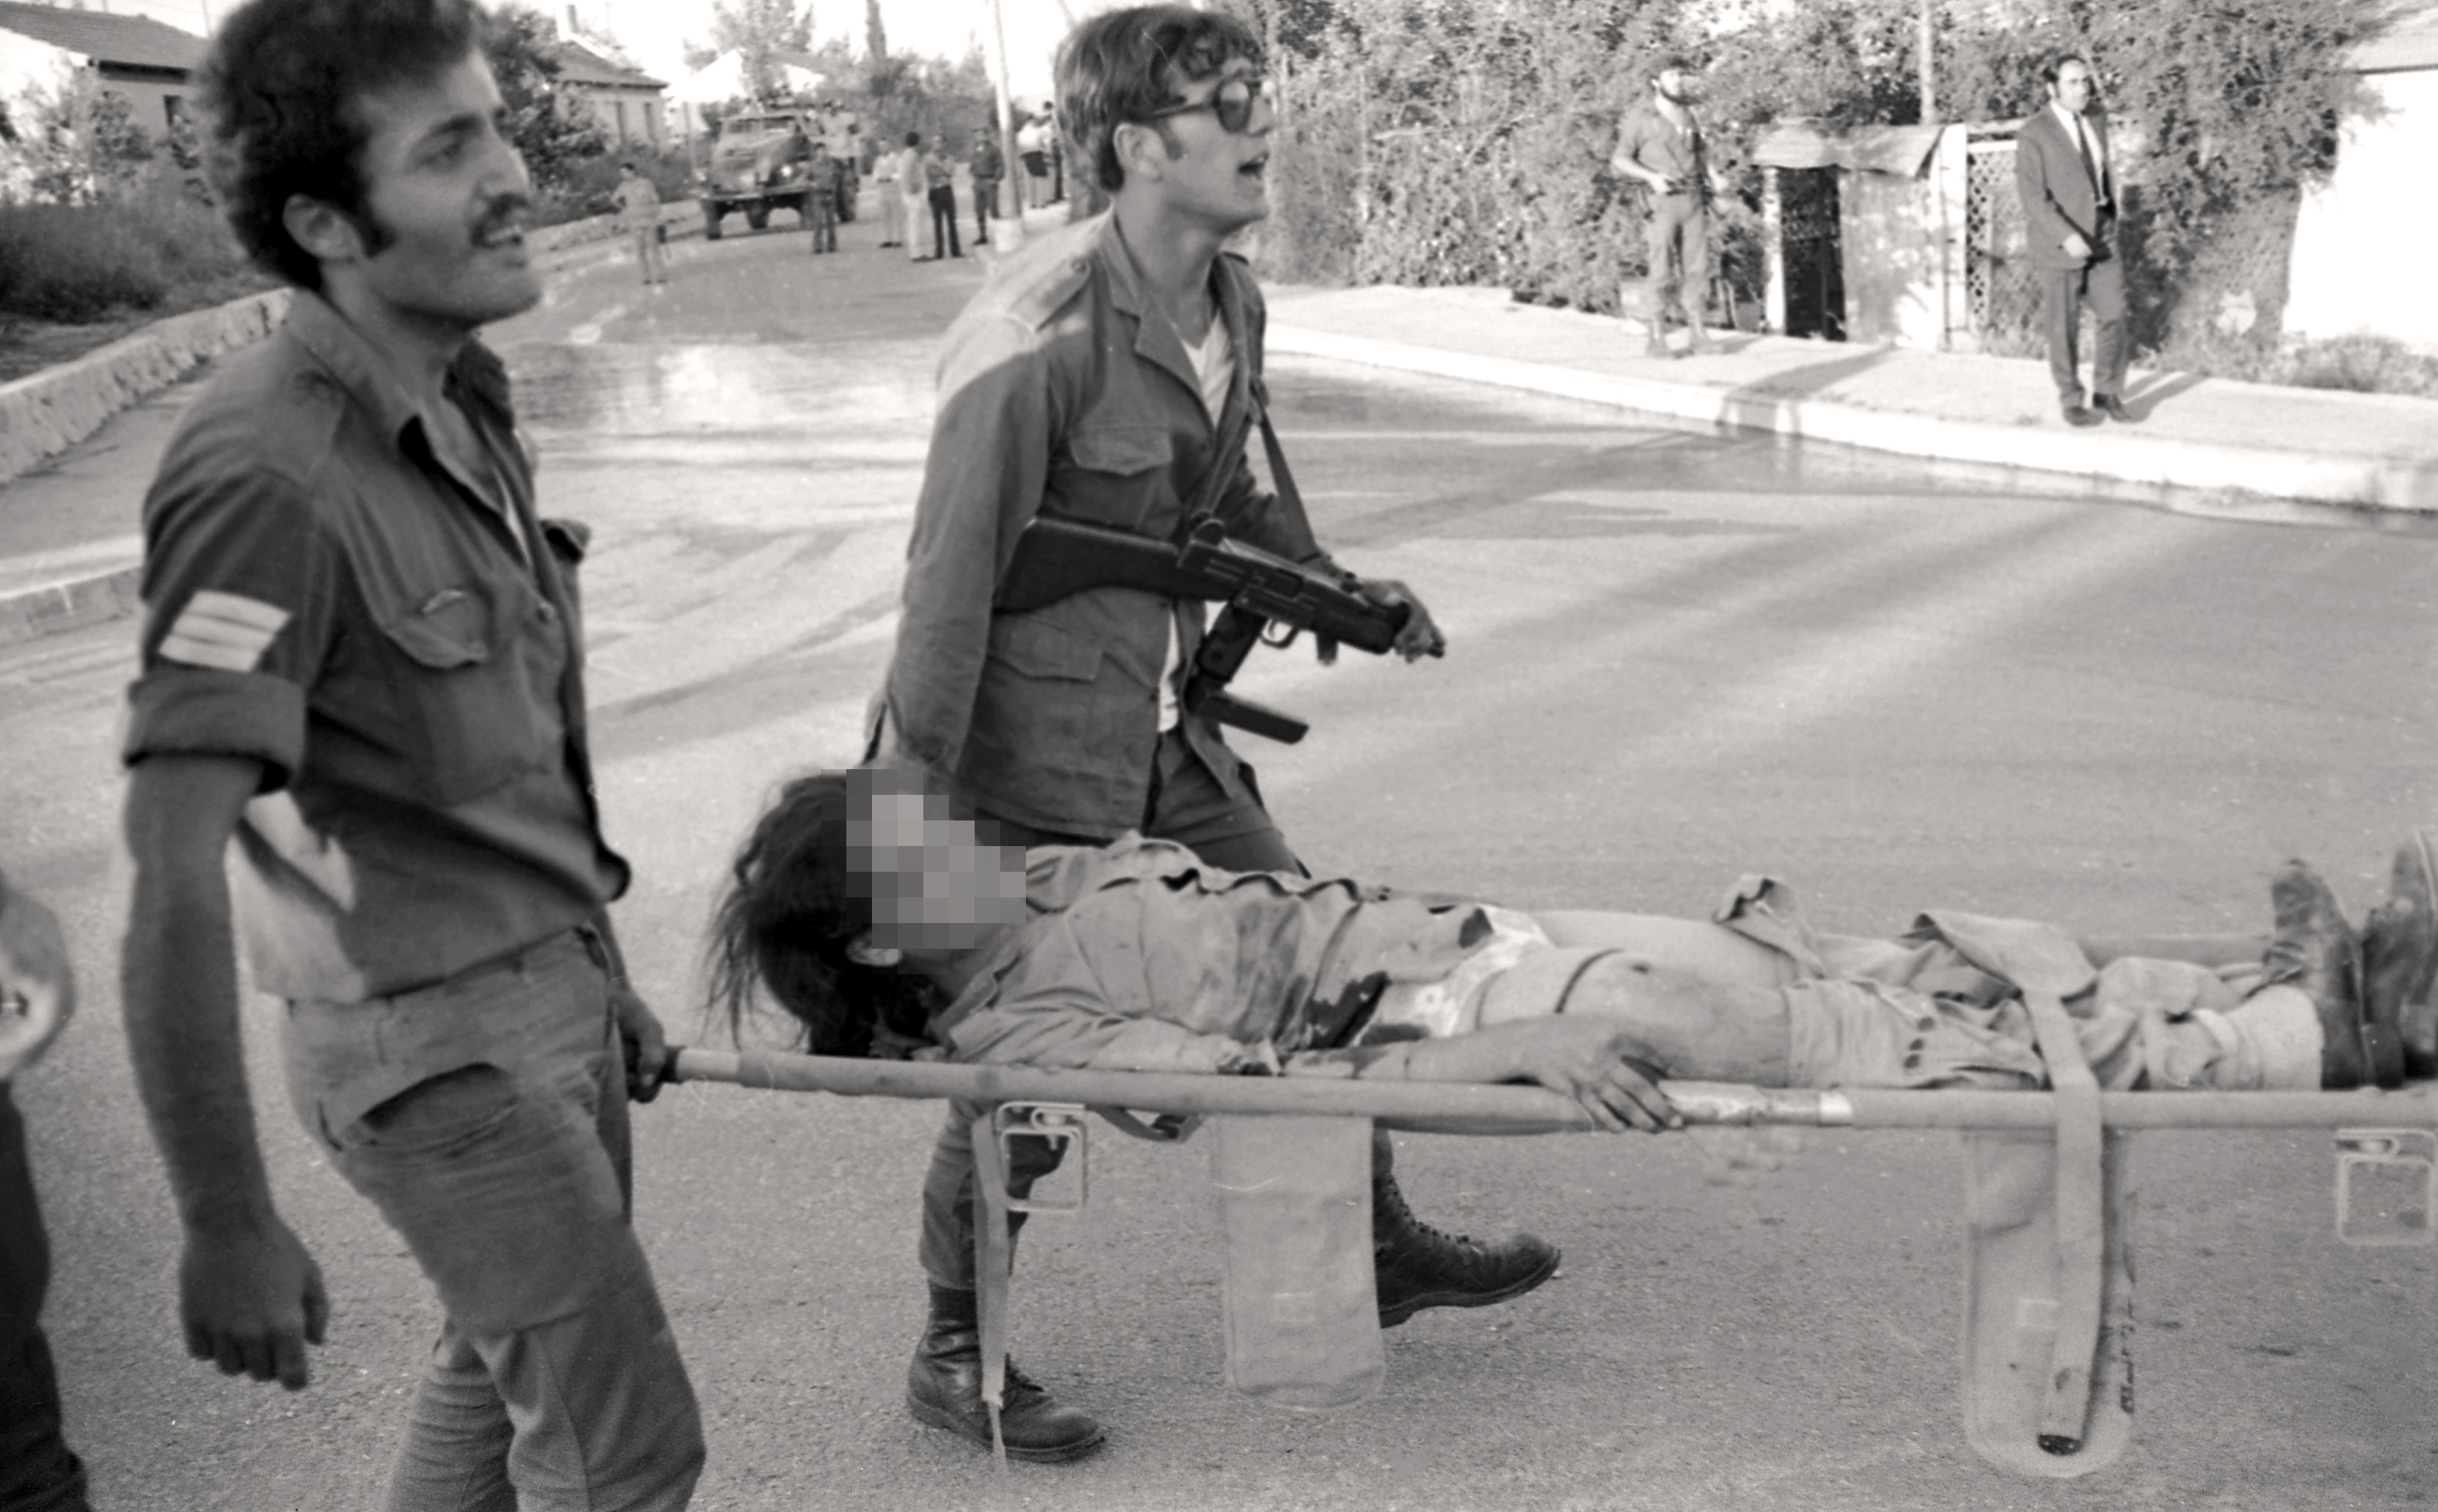 An Arab terrorist group attacked a school at Maalot killing several children and wounded thenth of them. IDF attacked the group killing the terrorists. Photo shows: IDF carrying wounded children 1974/05/15 Copyright © IPPA 09239-010-08 Photo by IPPA Staff